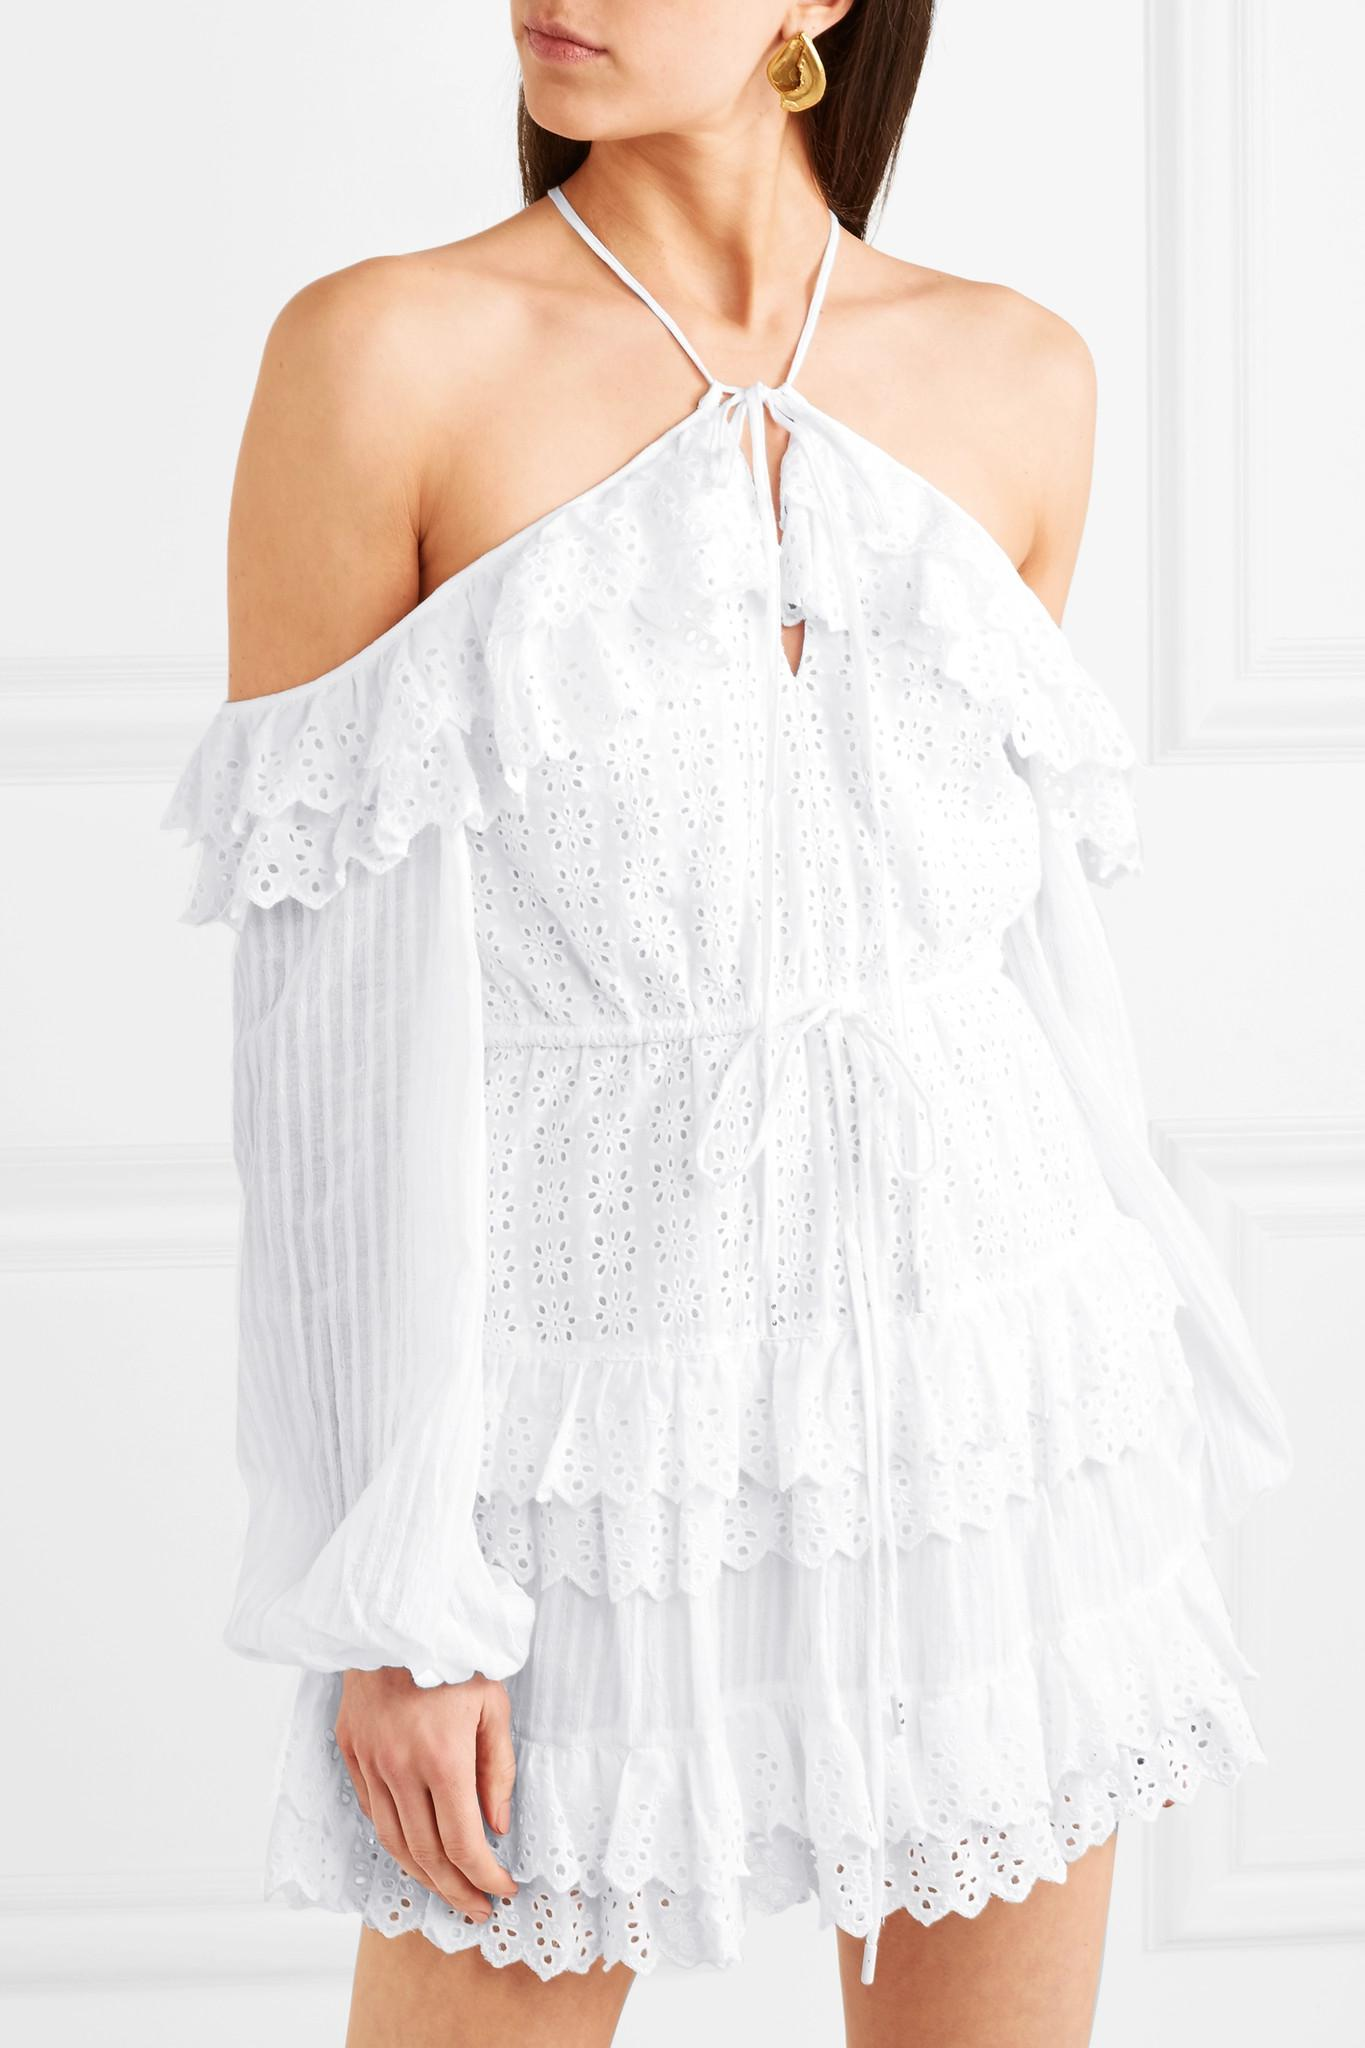 Lover Of Mine Broderie Anglaise Cotton Mini Dress - White Alice McCall Sale Visit Discount 2018 Free Shipping Affordable Purchase Outlet Pre Order lXPIivg